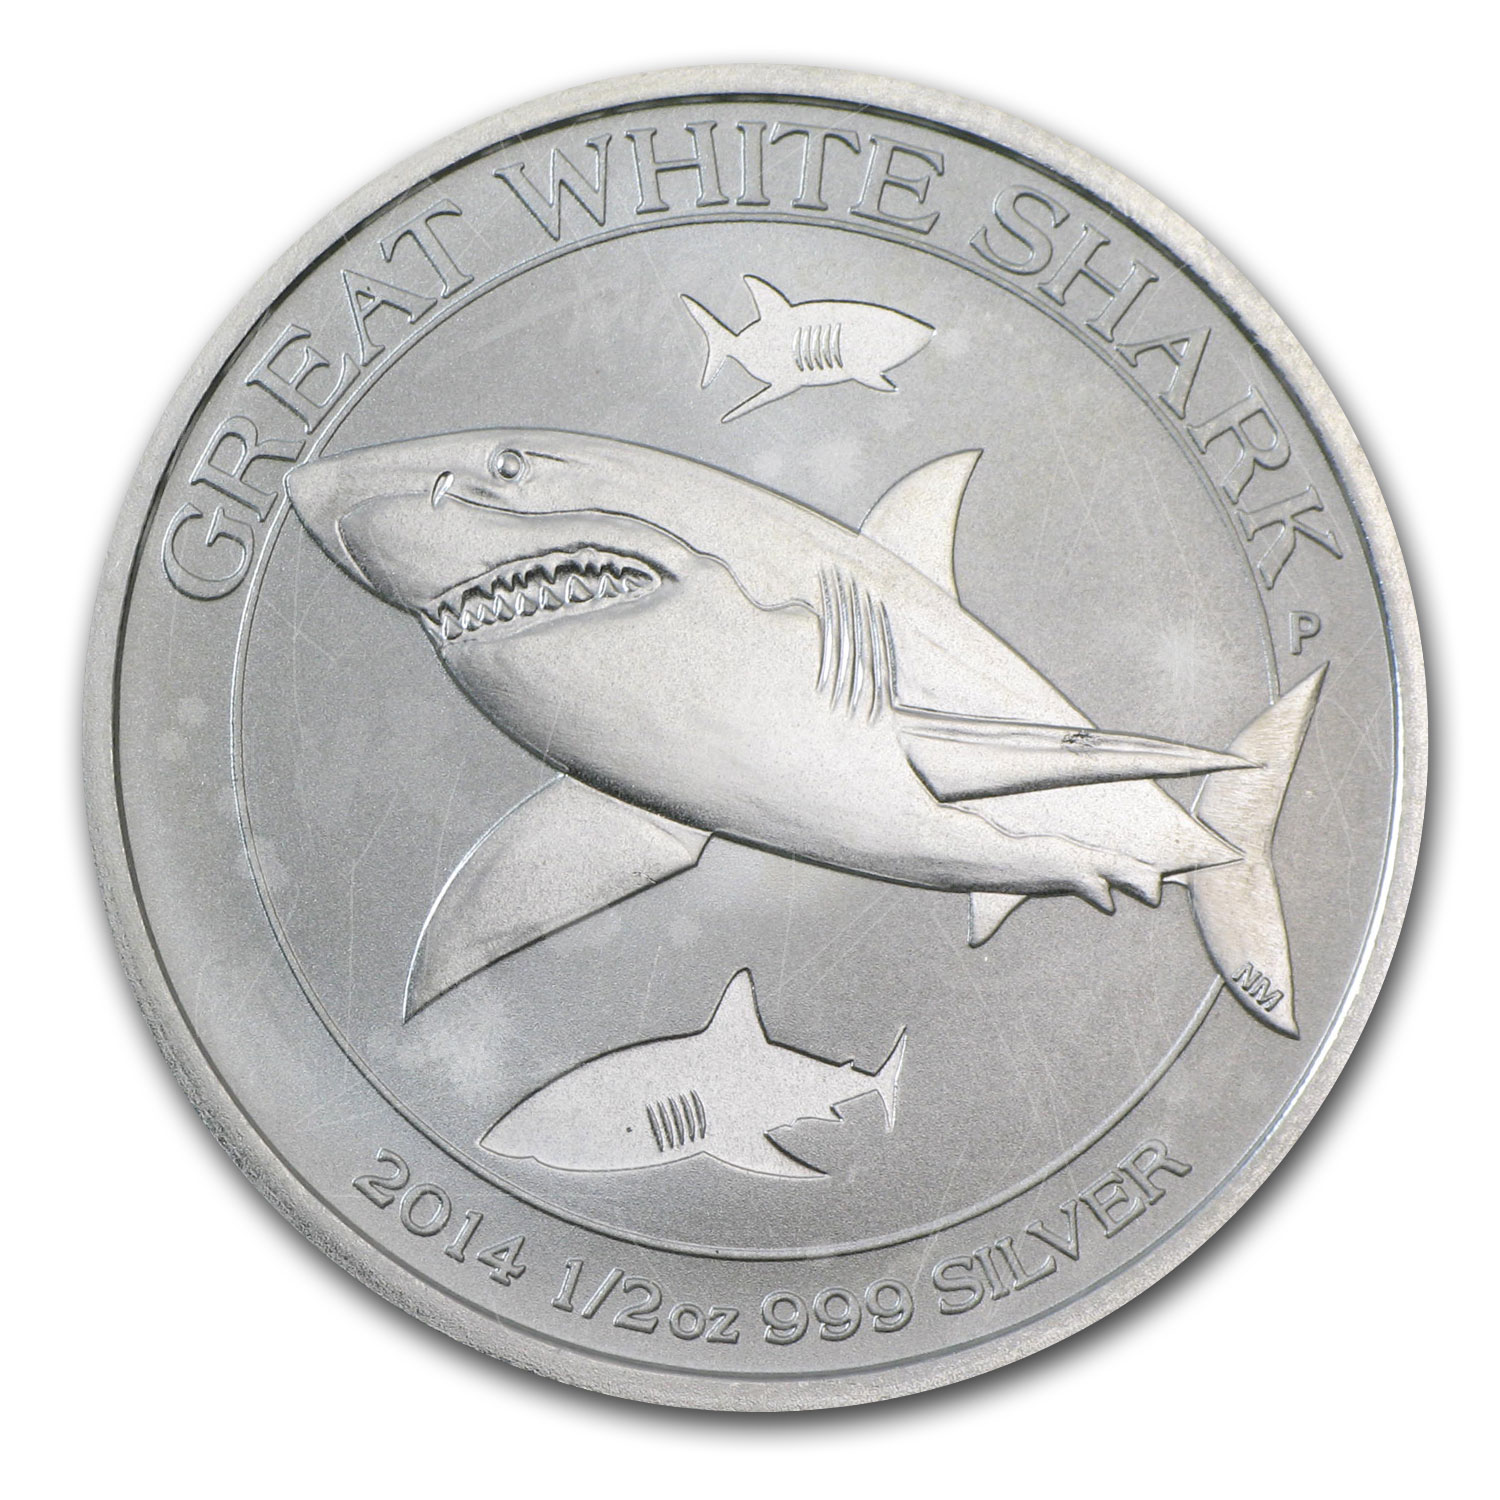 2014 1/2 oz Silver Australian Great White Shark (Abrasions)